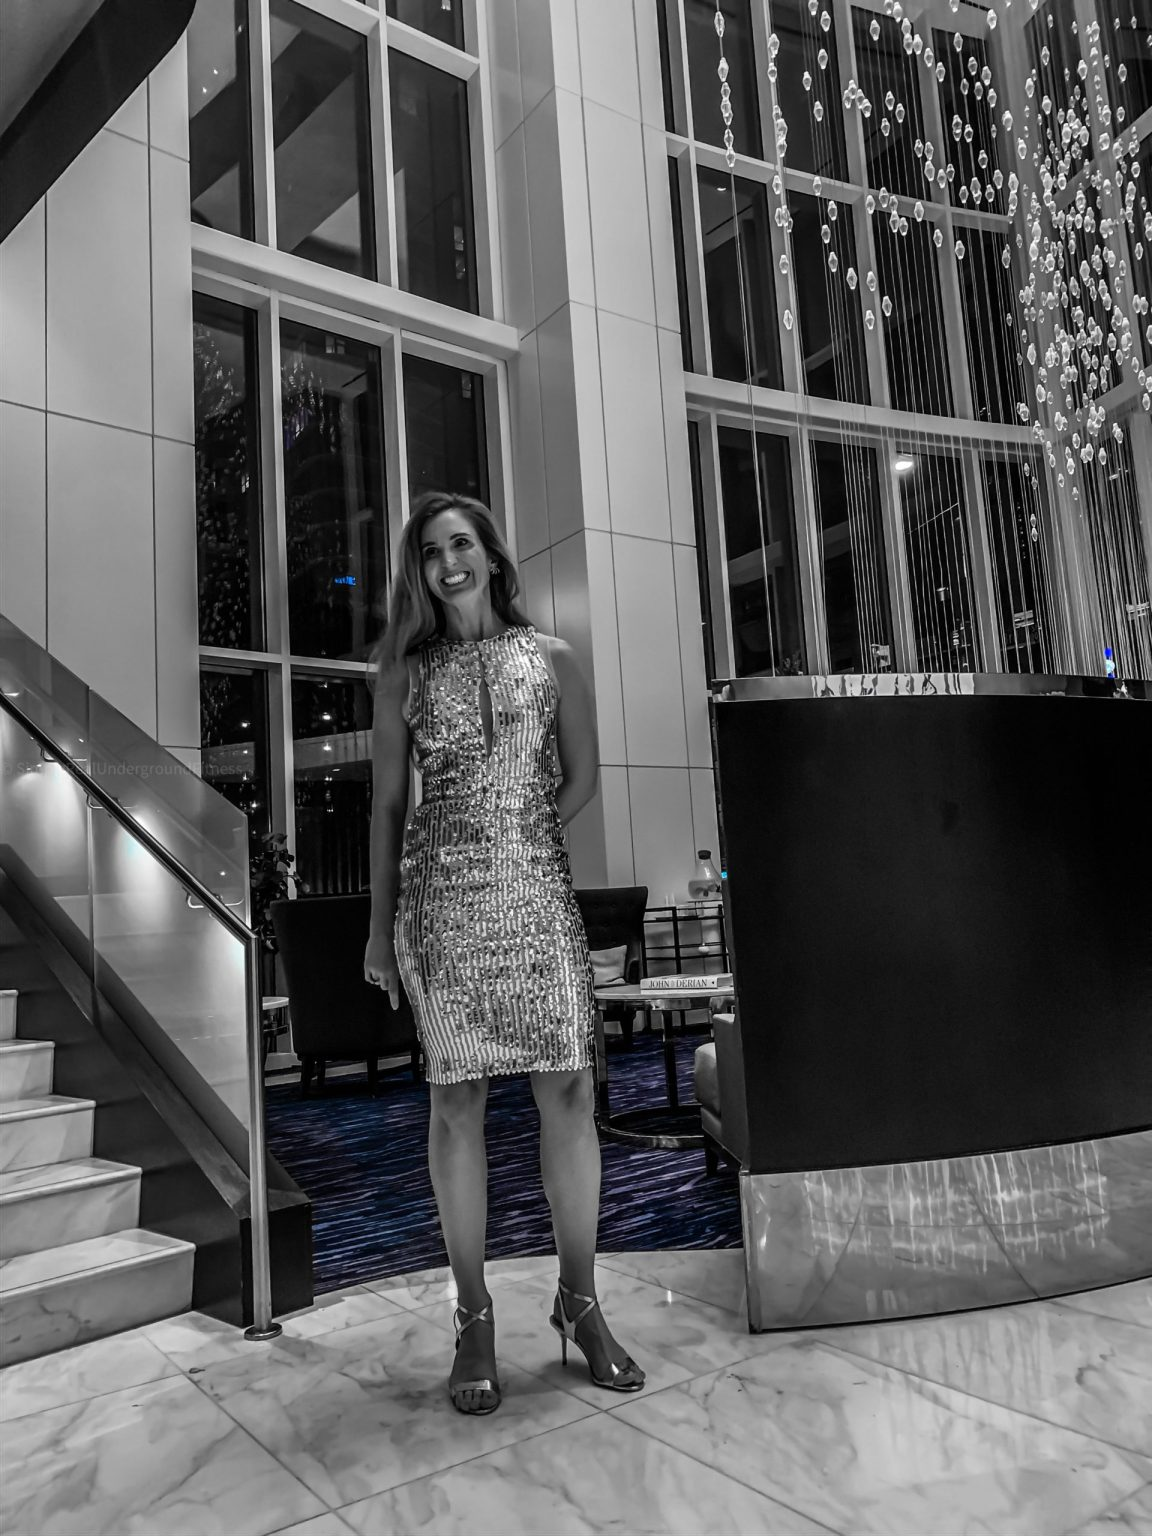 Black and White, photography, monochrome, dress, evening out, high heels